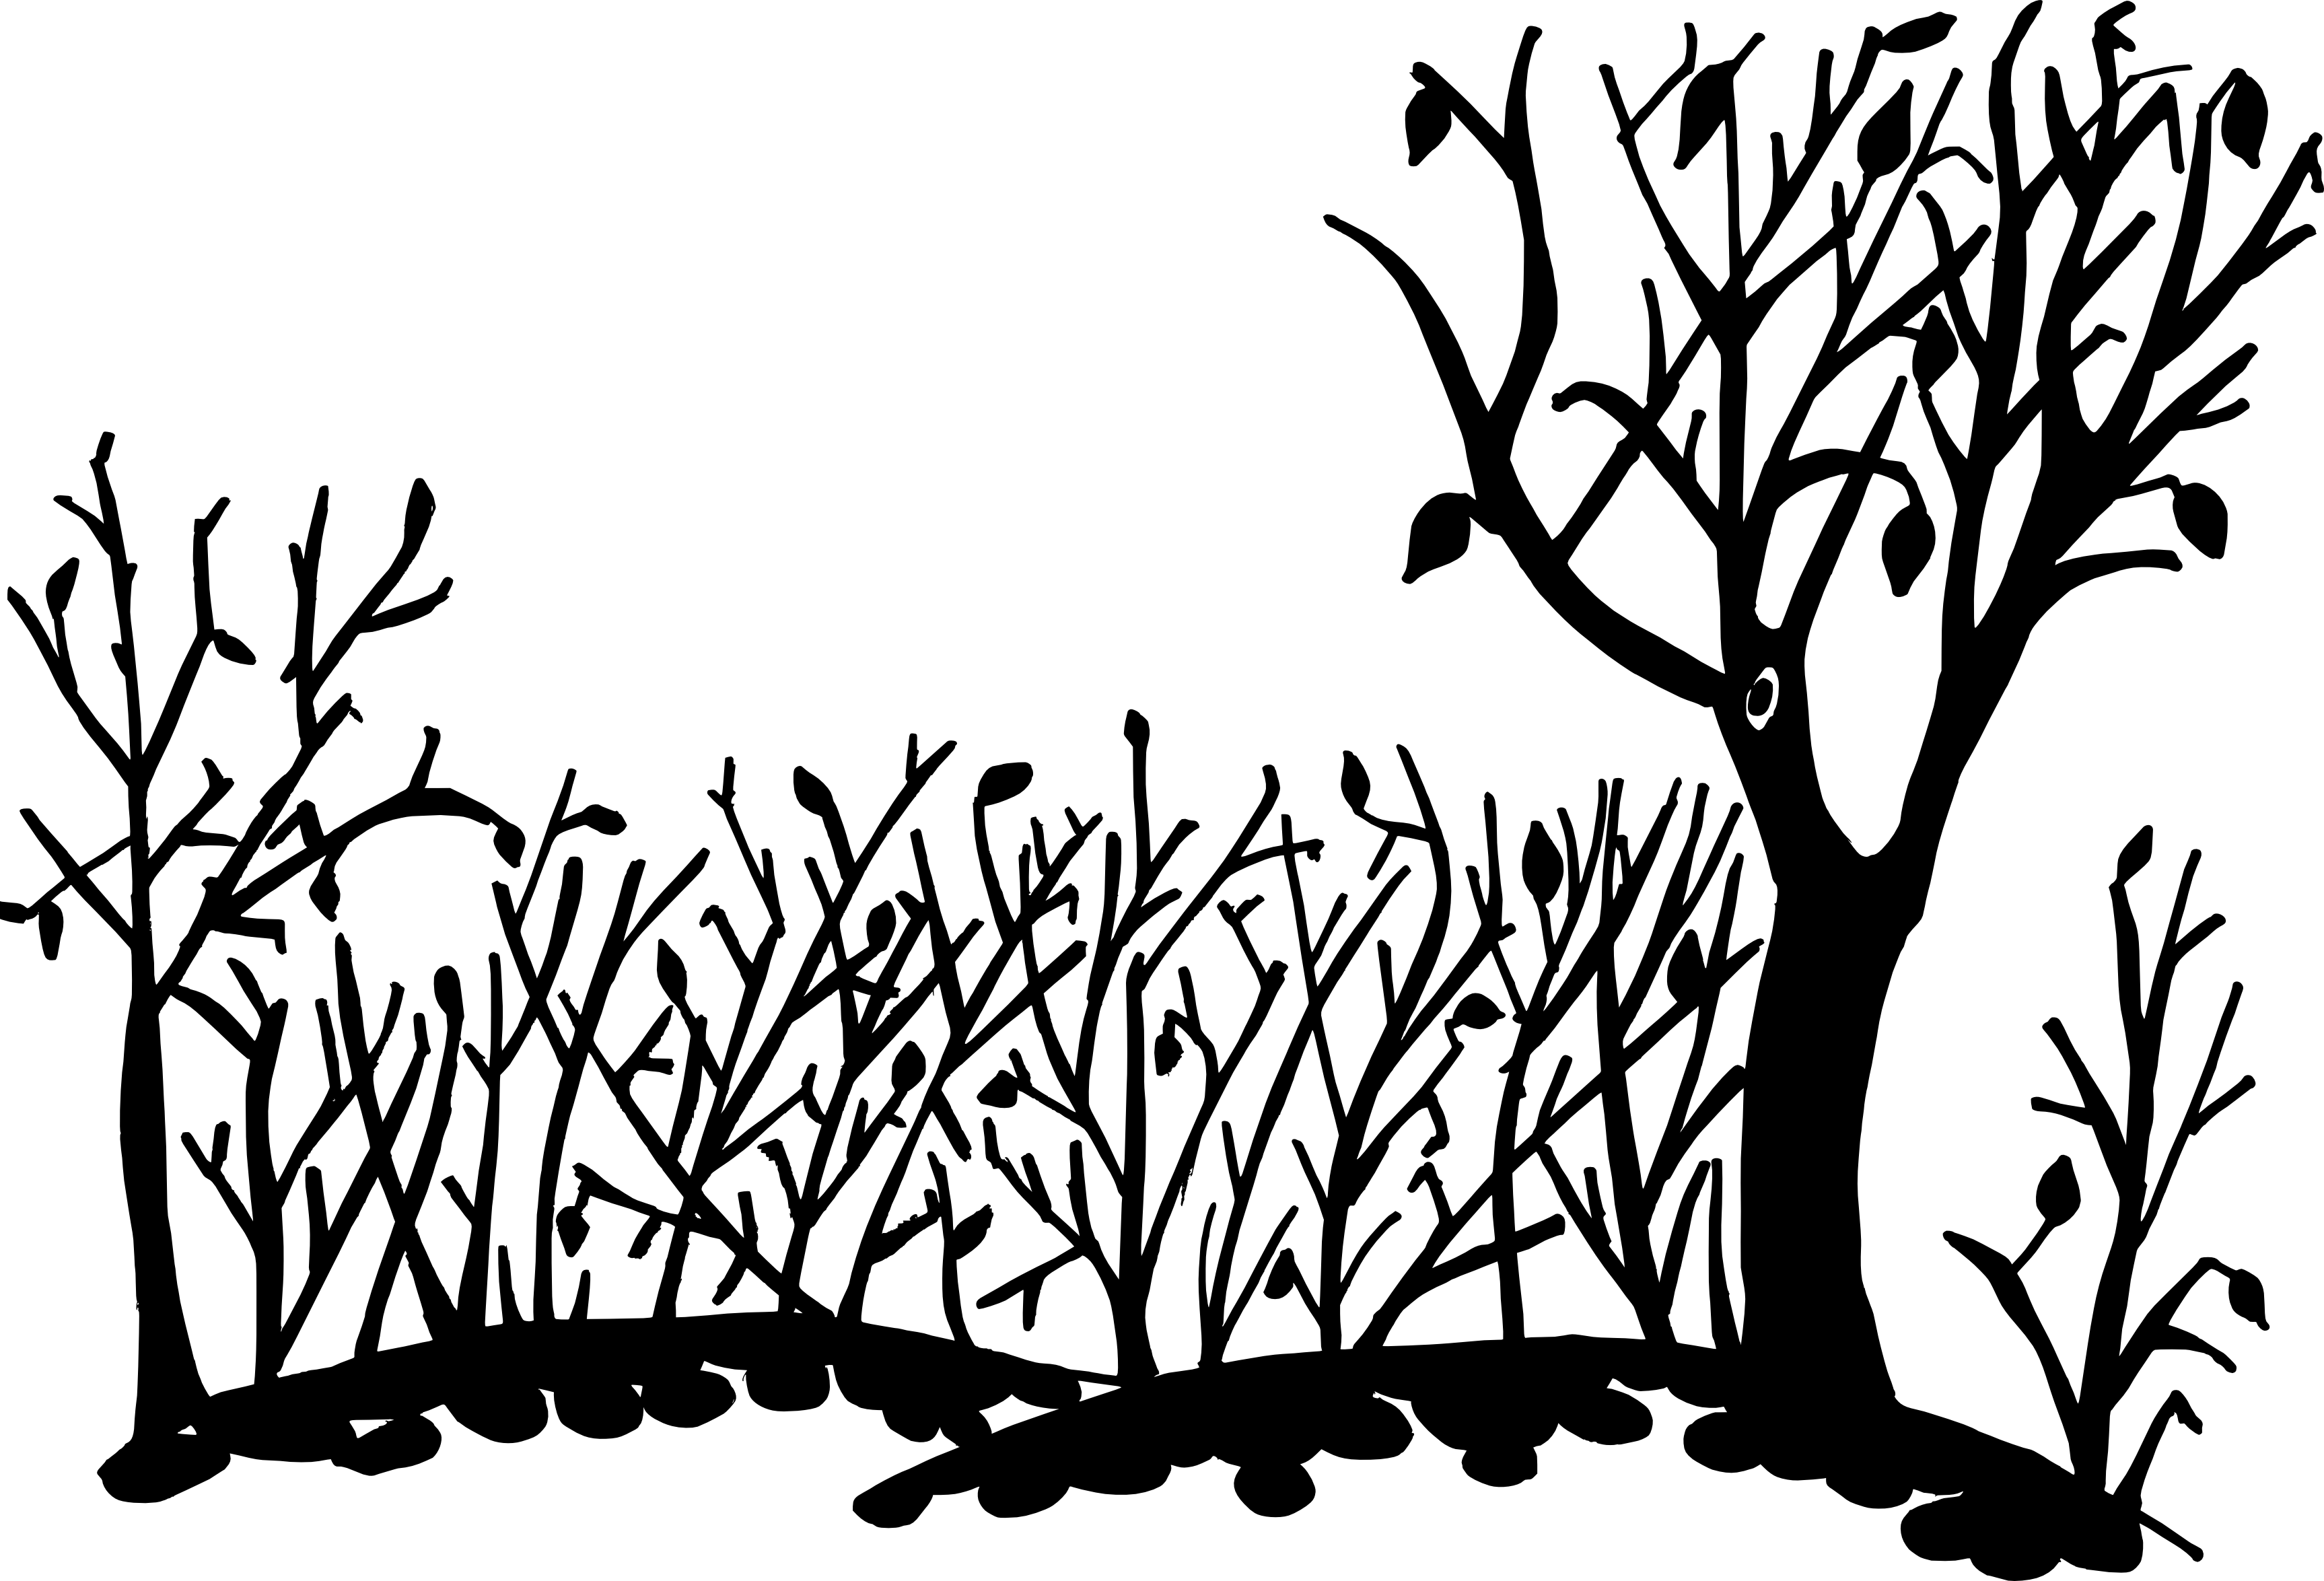 svg black and white Nature Background Drawing at GetDrawings